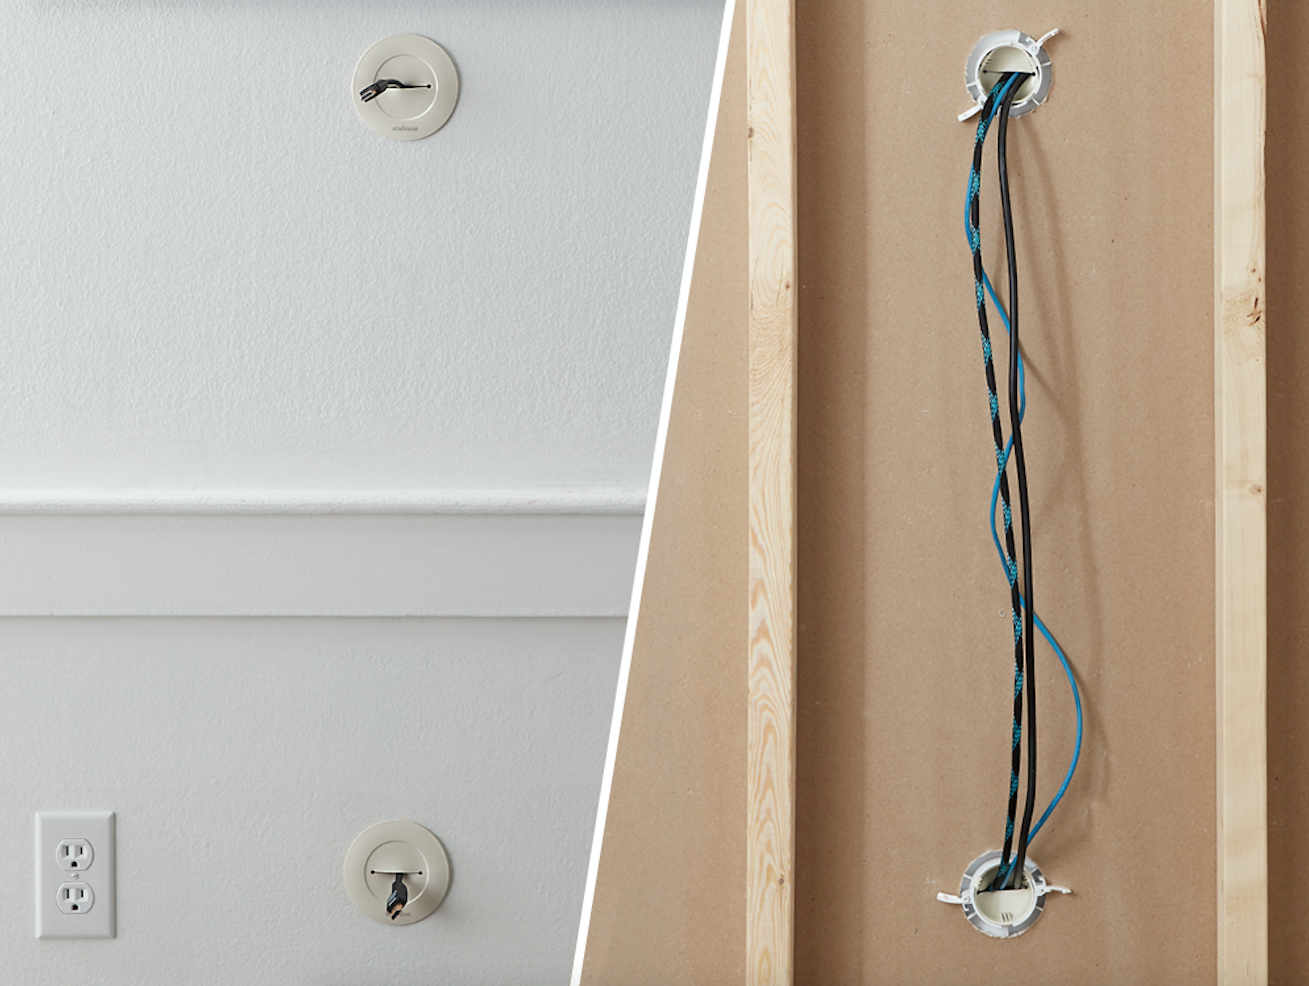 How To Hide TV Wires In Or On The Wall - ECHOGEAR Hidden Wiring on